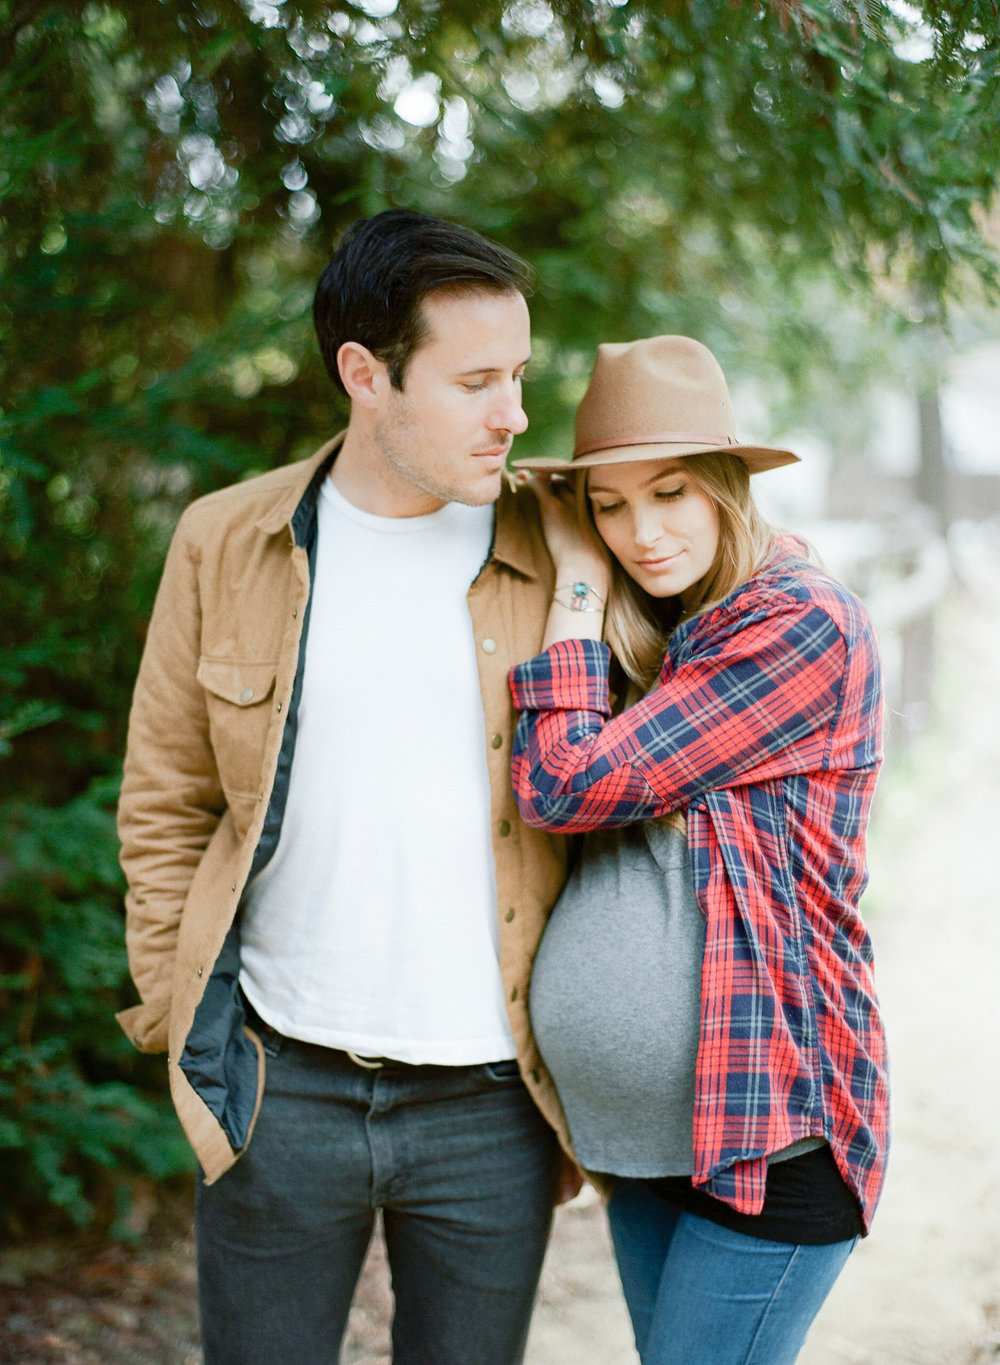 Chrissy & David Maternity Session-15.jpg